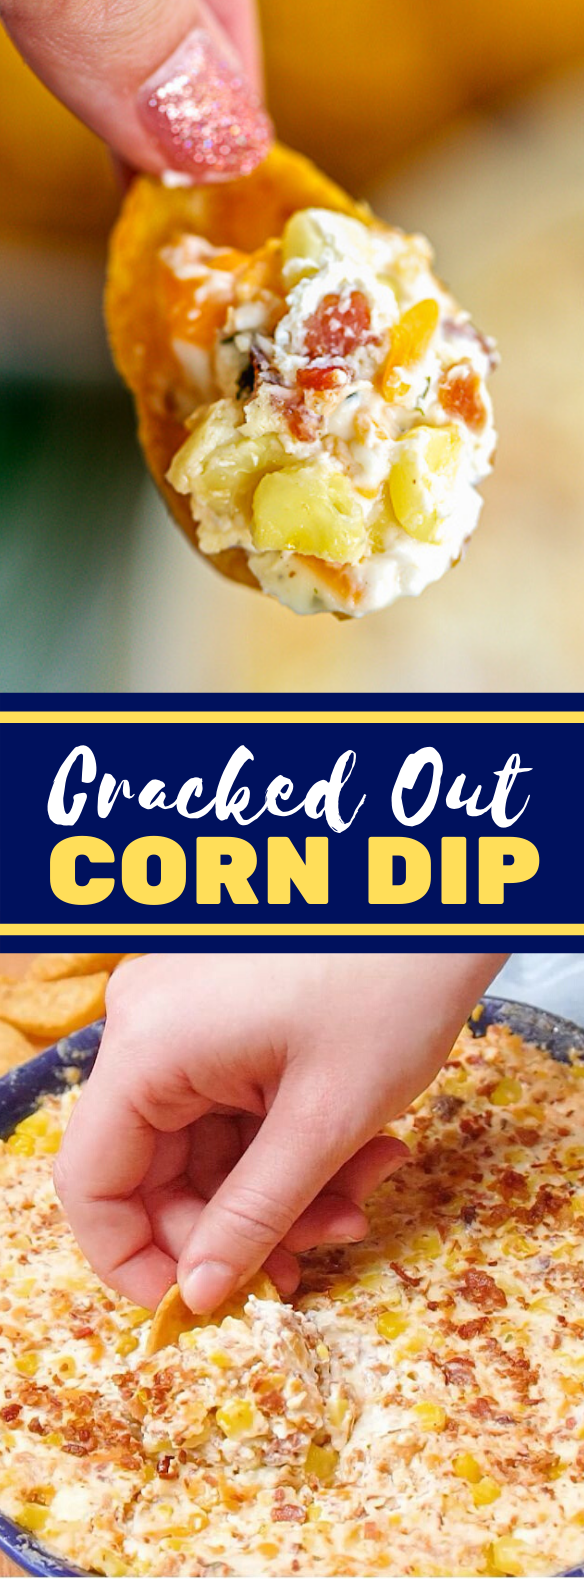 CRACKED OUT CORN DIP {FOOTBALL FRIDAY} #appetizers #dinner